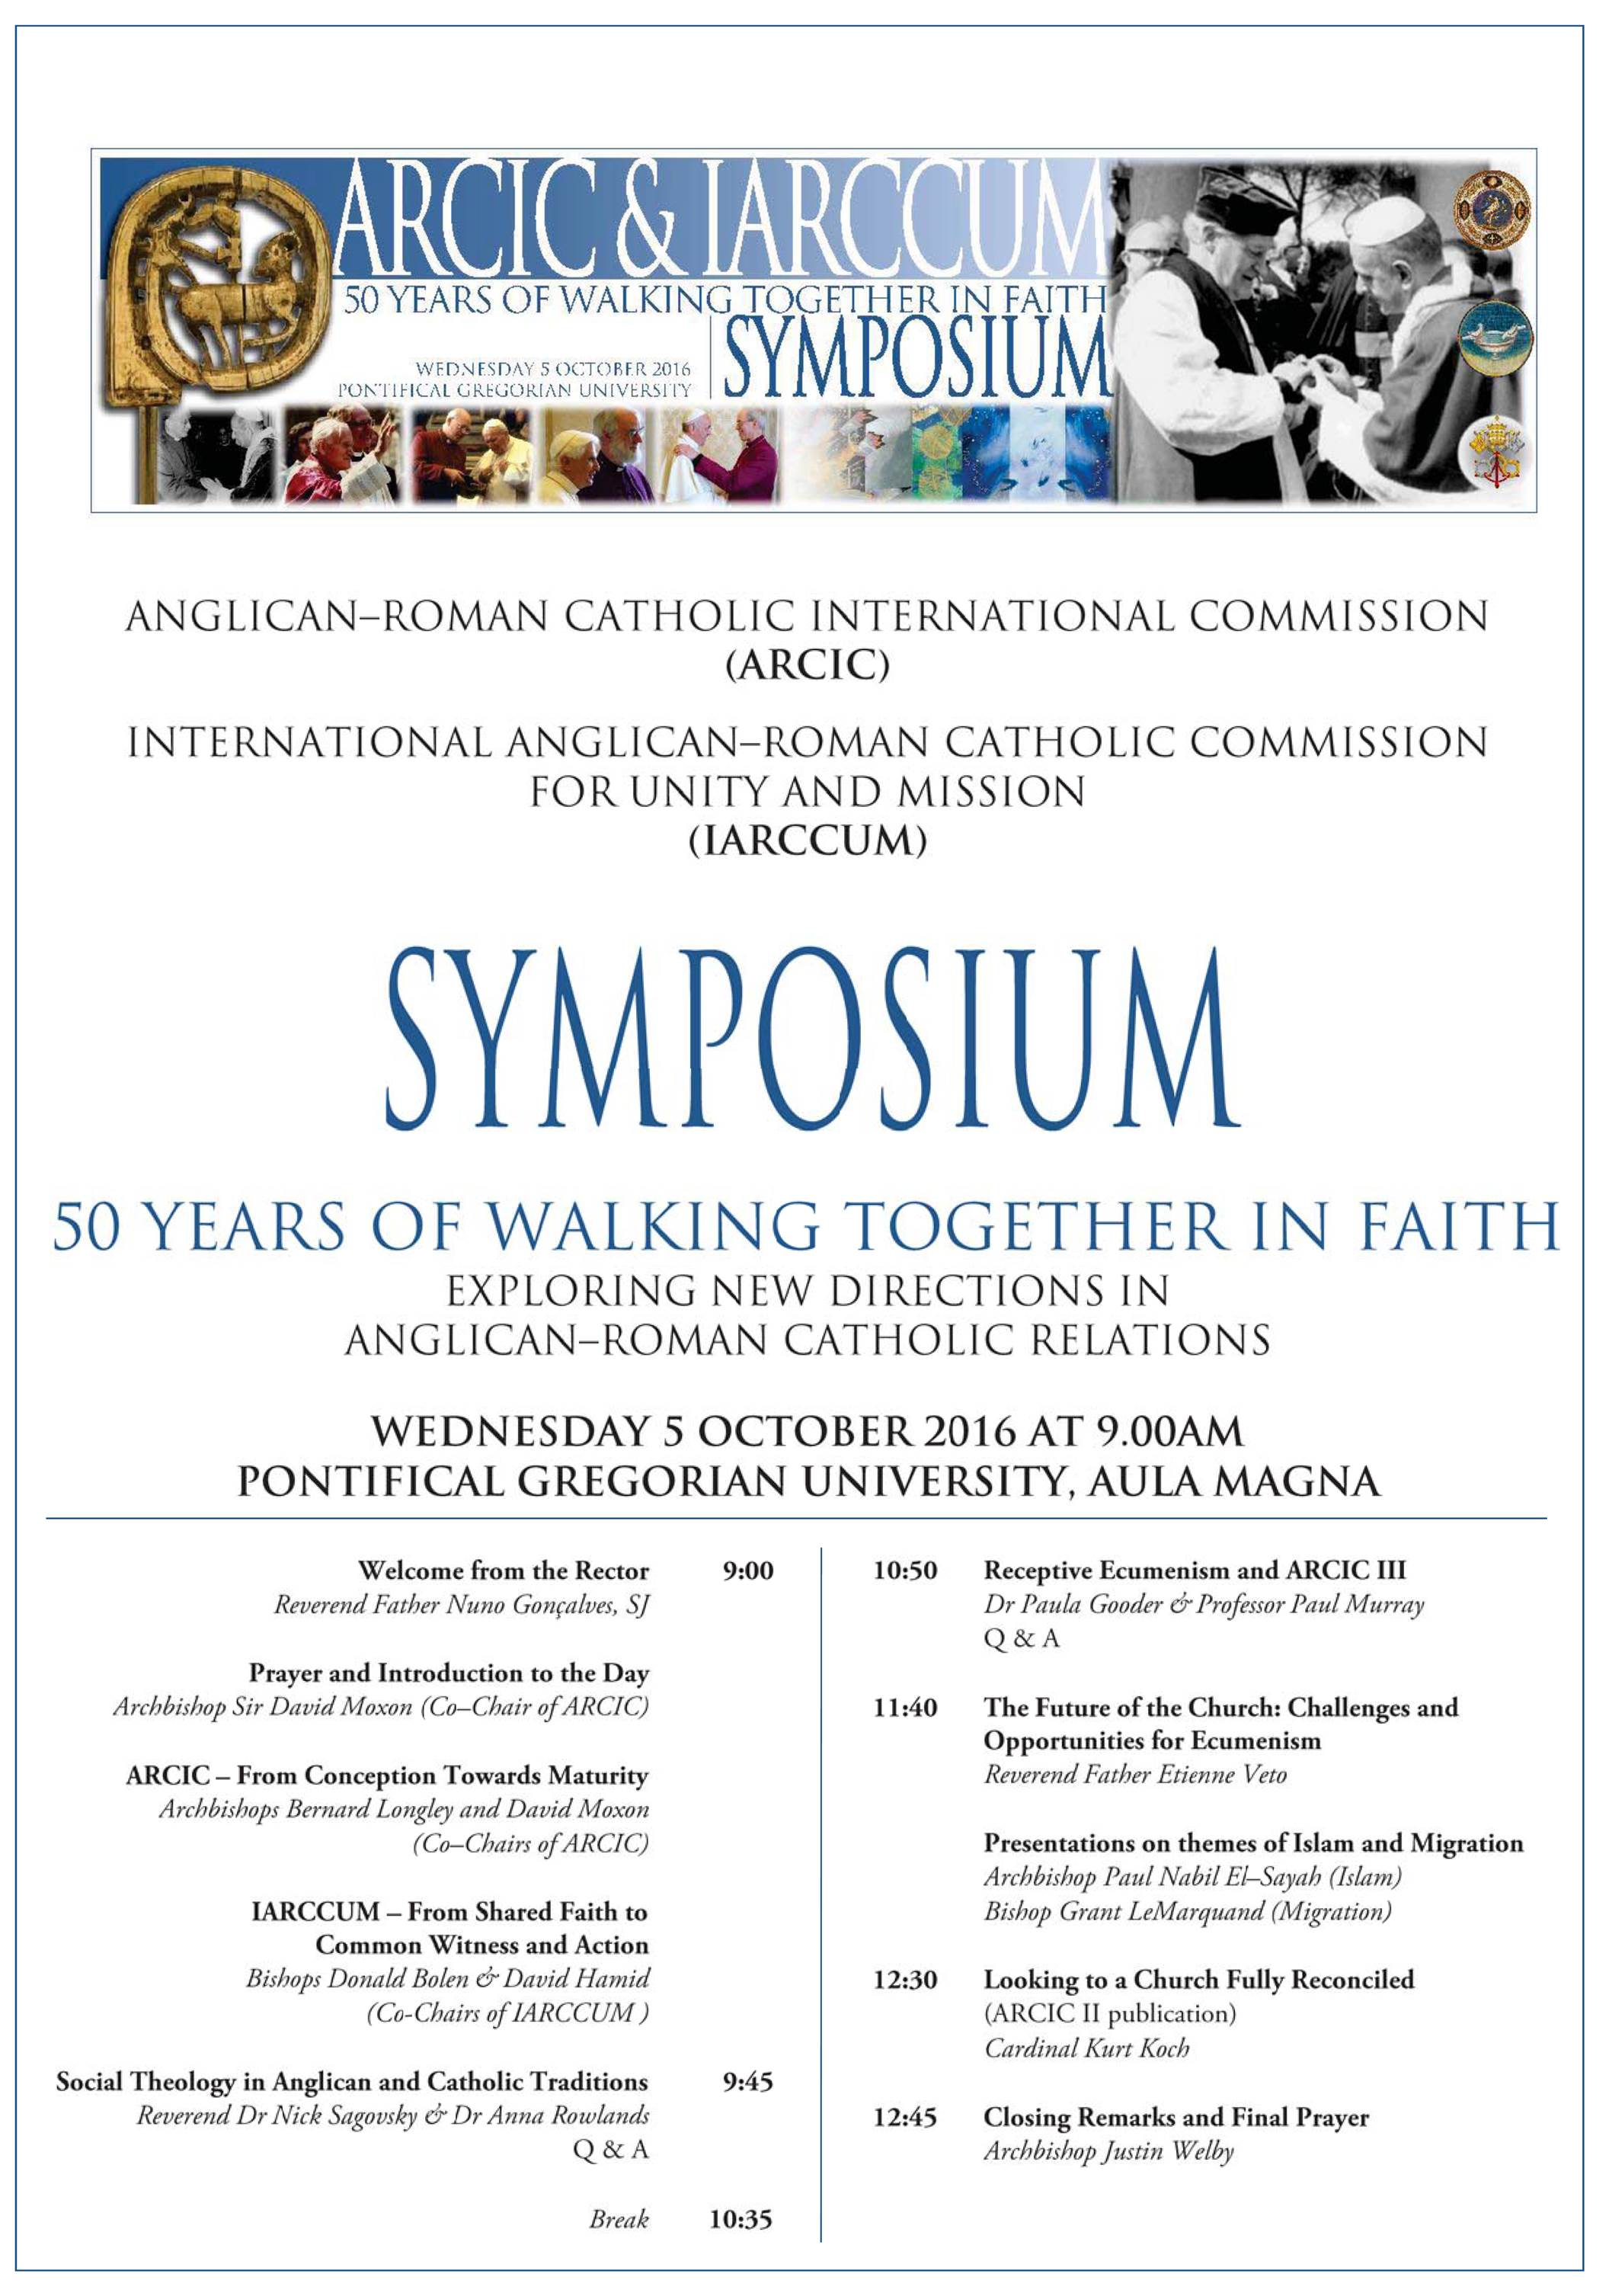 Schedule for the Symposium - ARCIC & IARCCUM: 50 years of walking together in faith